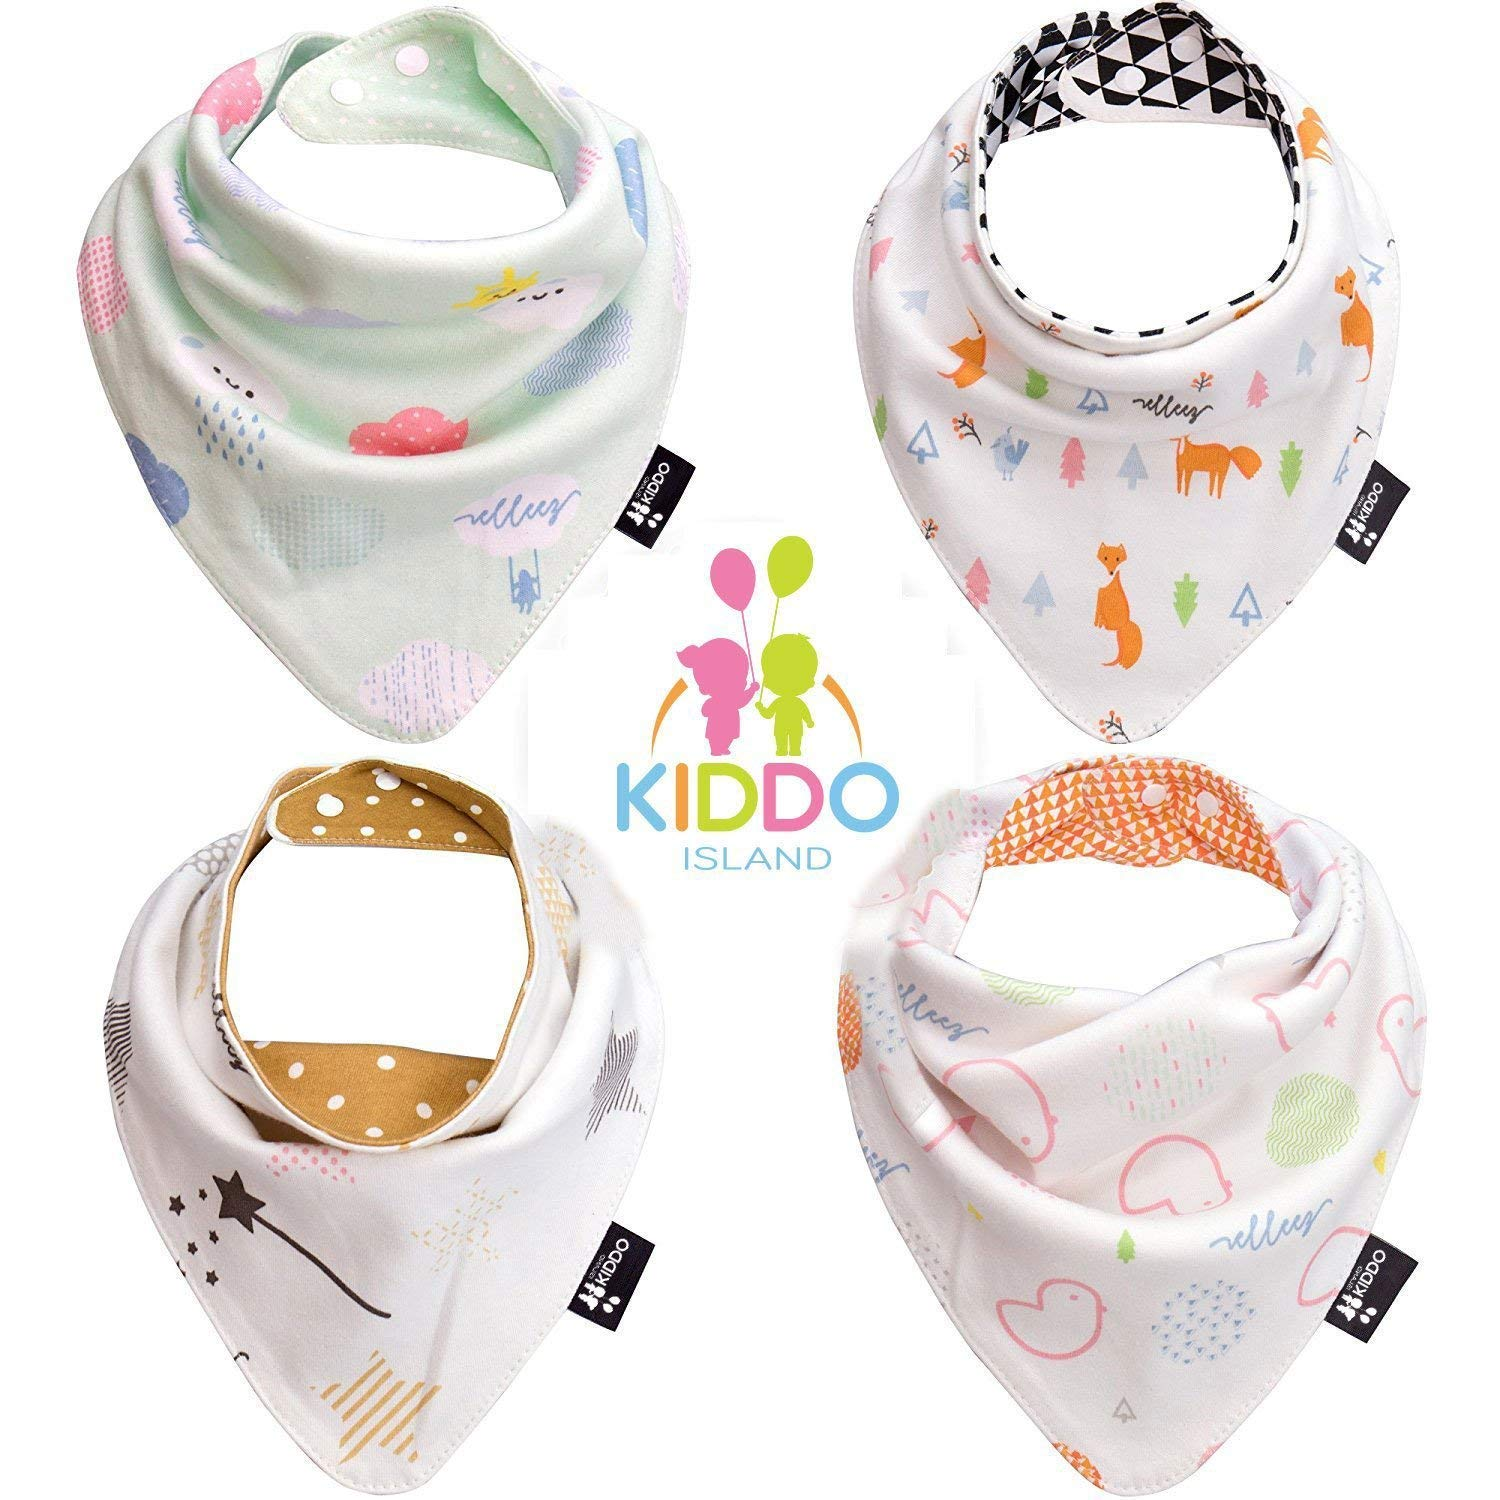 Soft and Absorbent Bibs for Baby Boys Girls 100/% Organic Cotton 12-Pack Baby Bandana Drool Bibs for Drooling and Teething Baby Shower Gift Set by iZiv